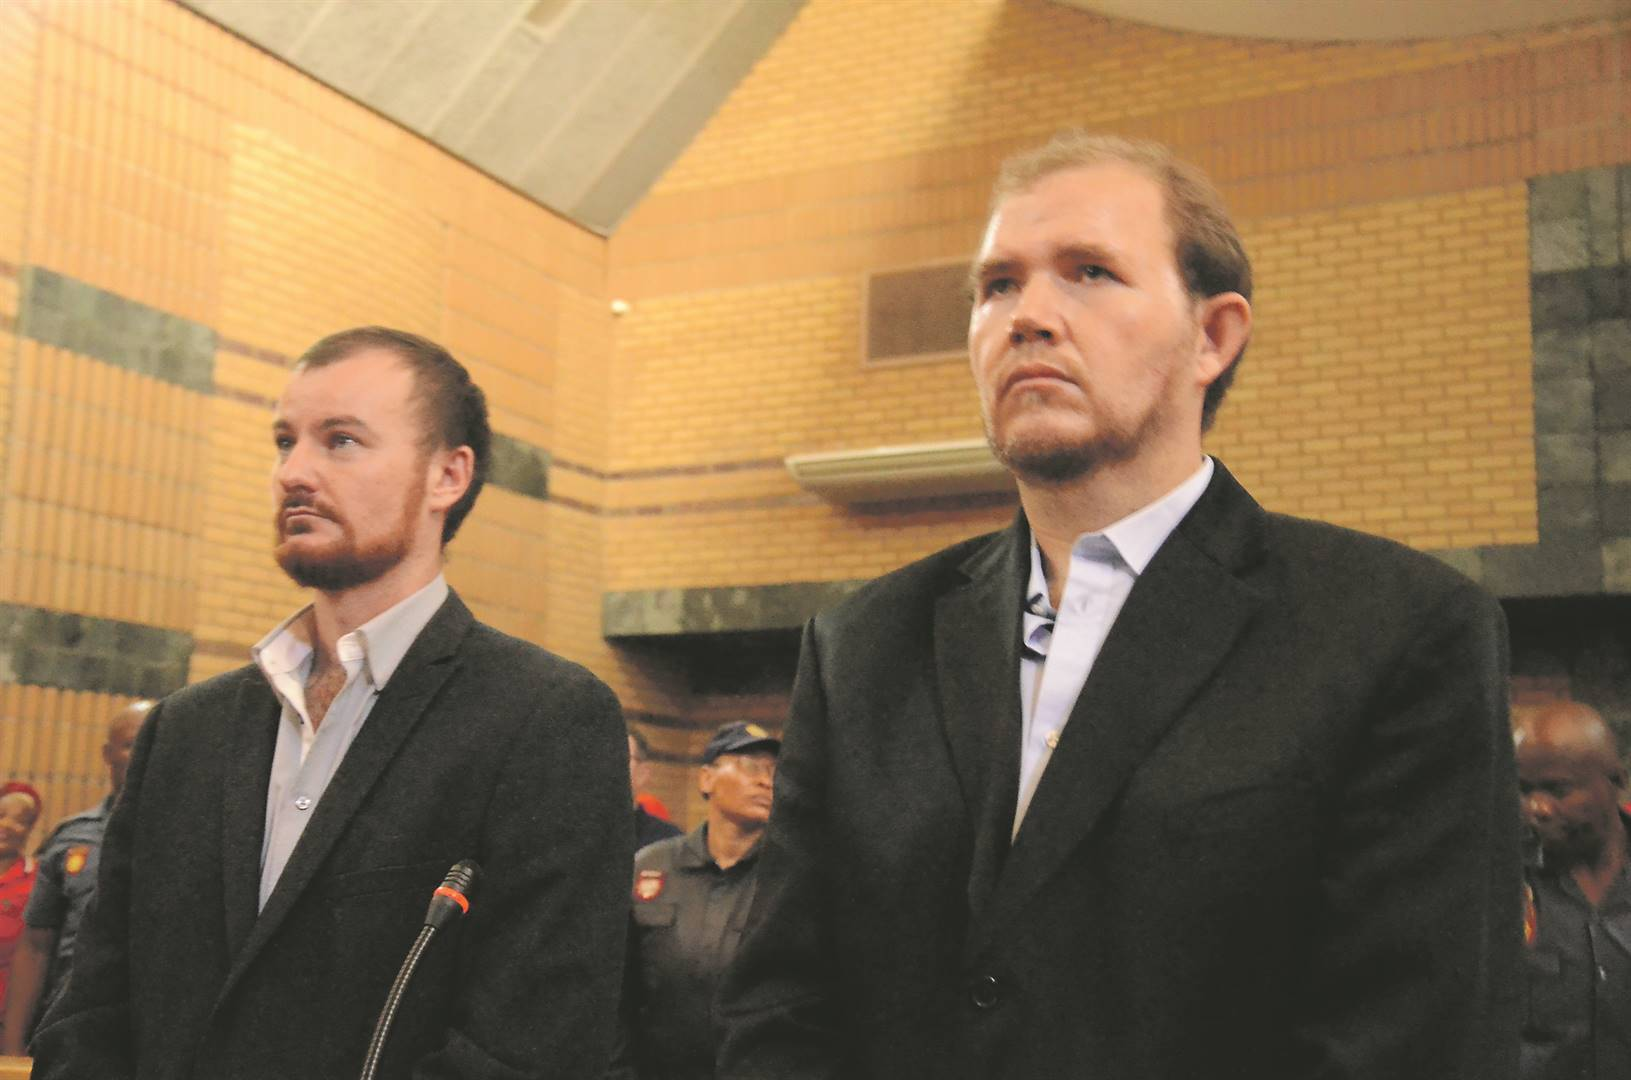 Pieter Doorewaard and Phillip Schutte were the two at the centre of the case.